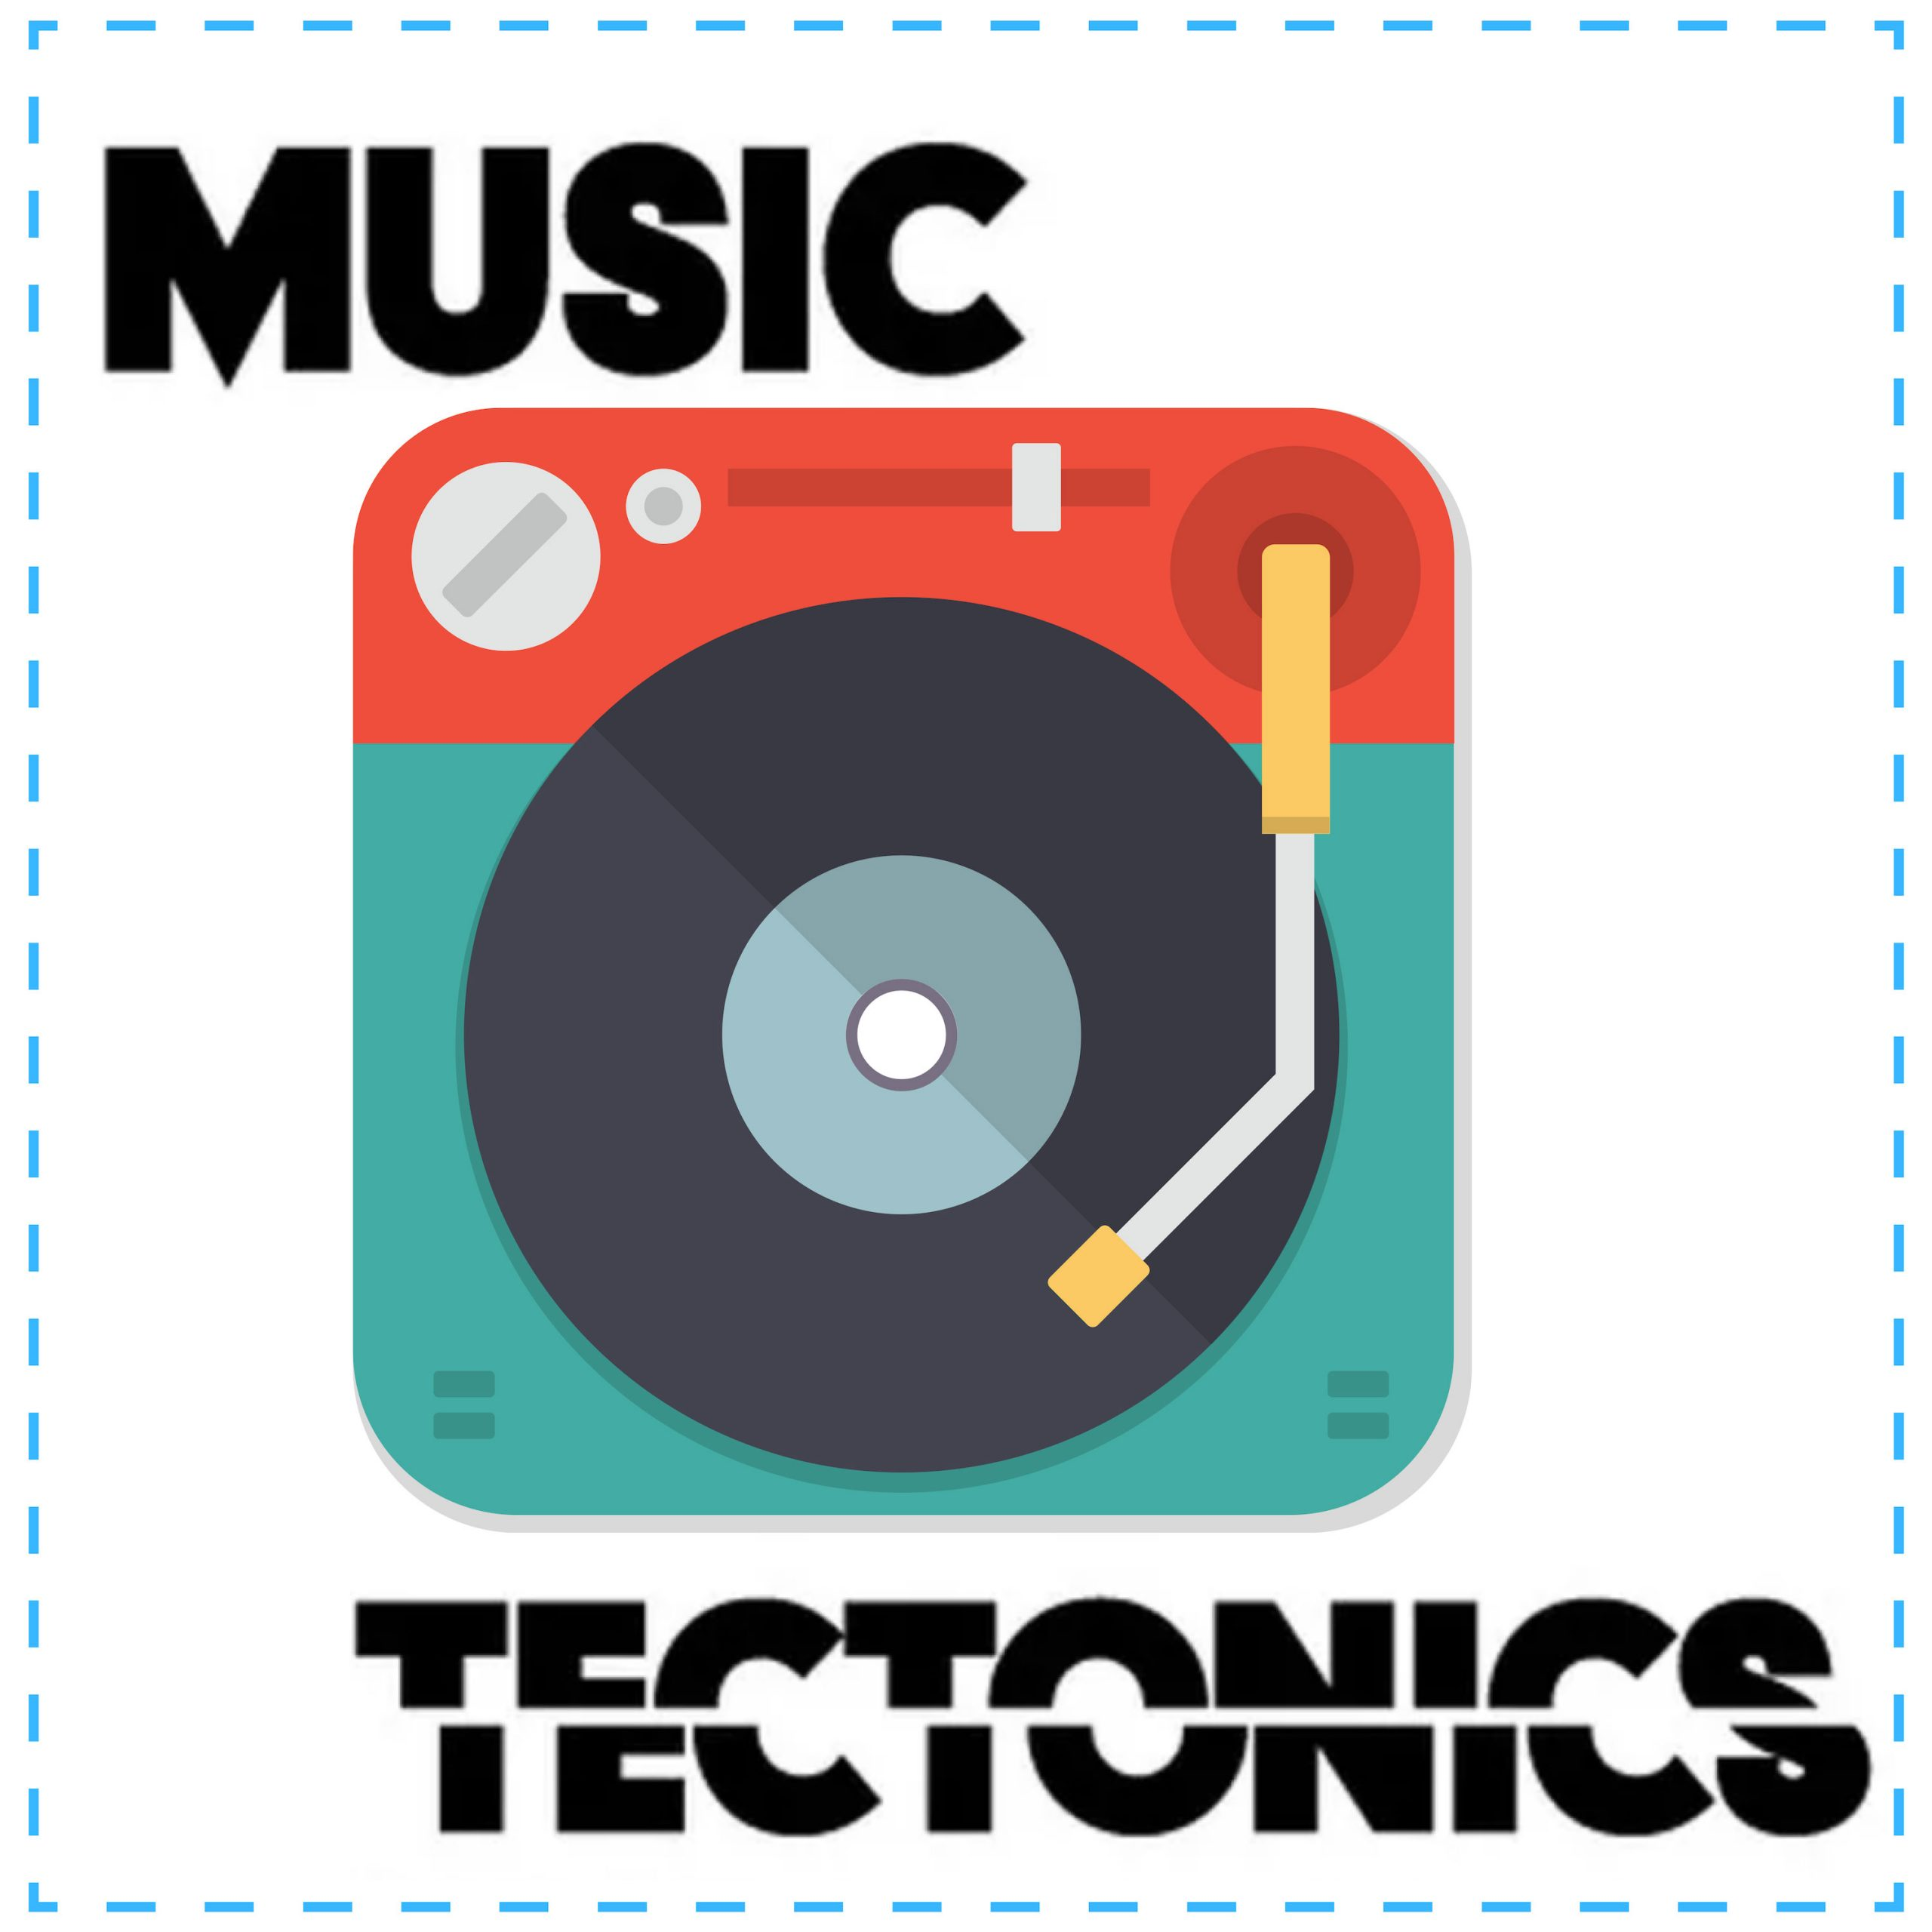 Music Tectonics Podcast